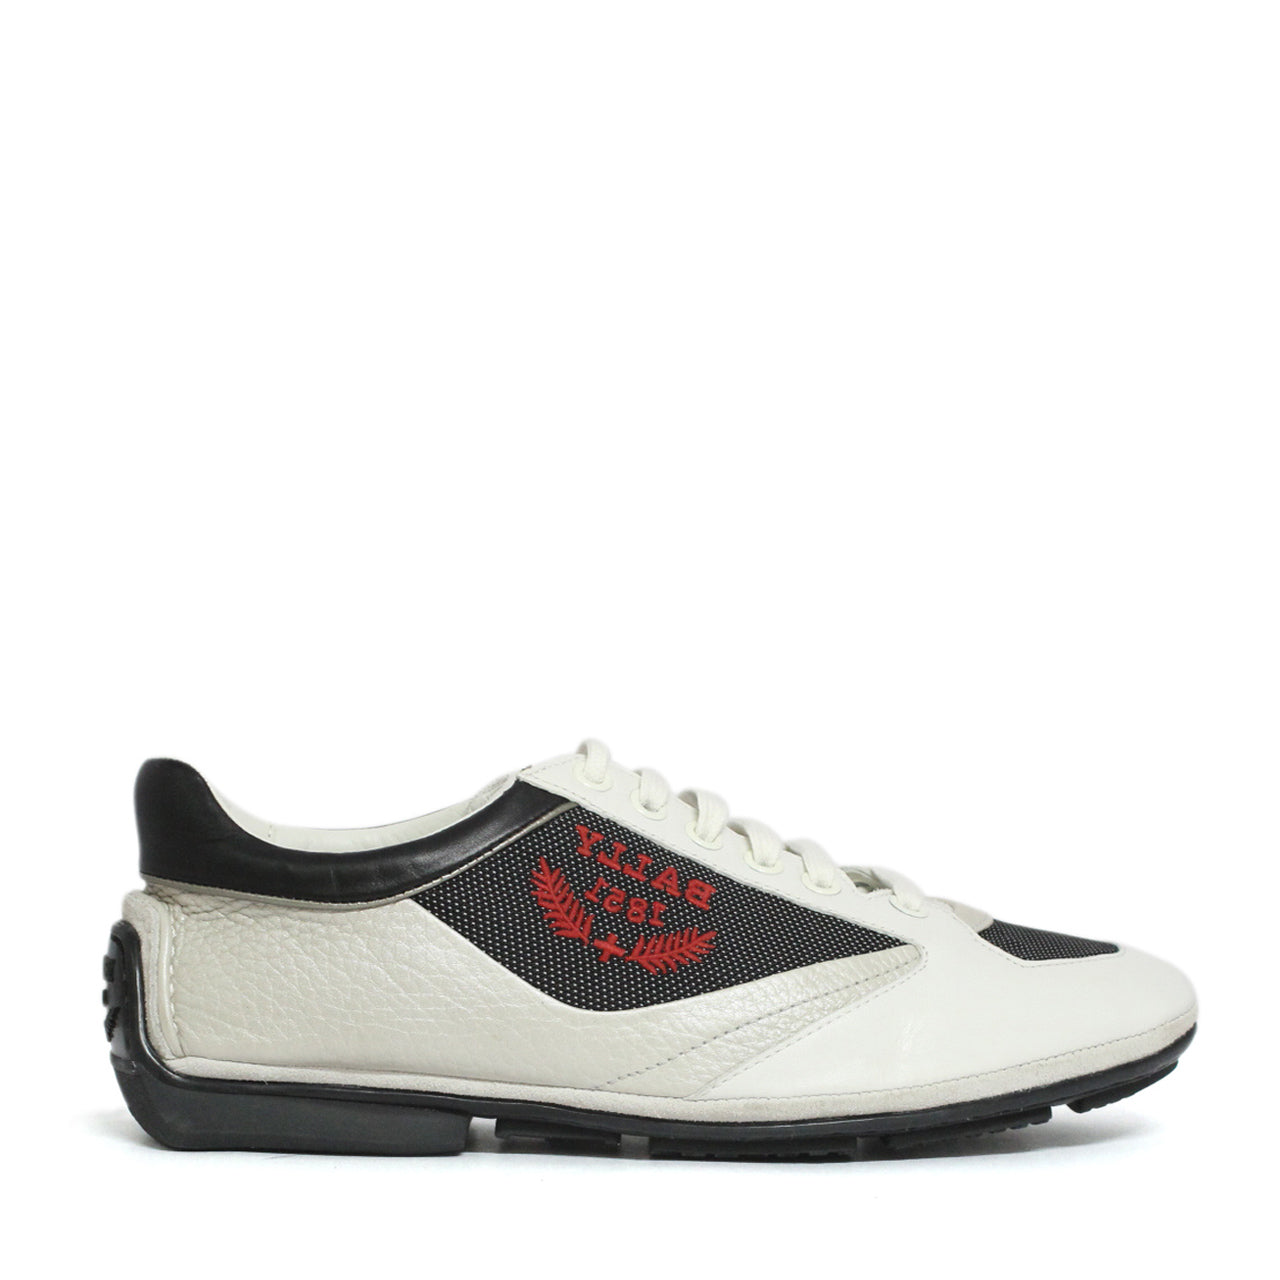 Bally Olivado Men's Training Shoes